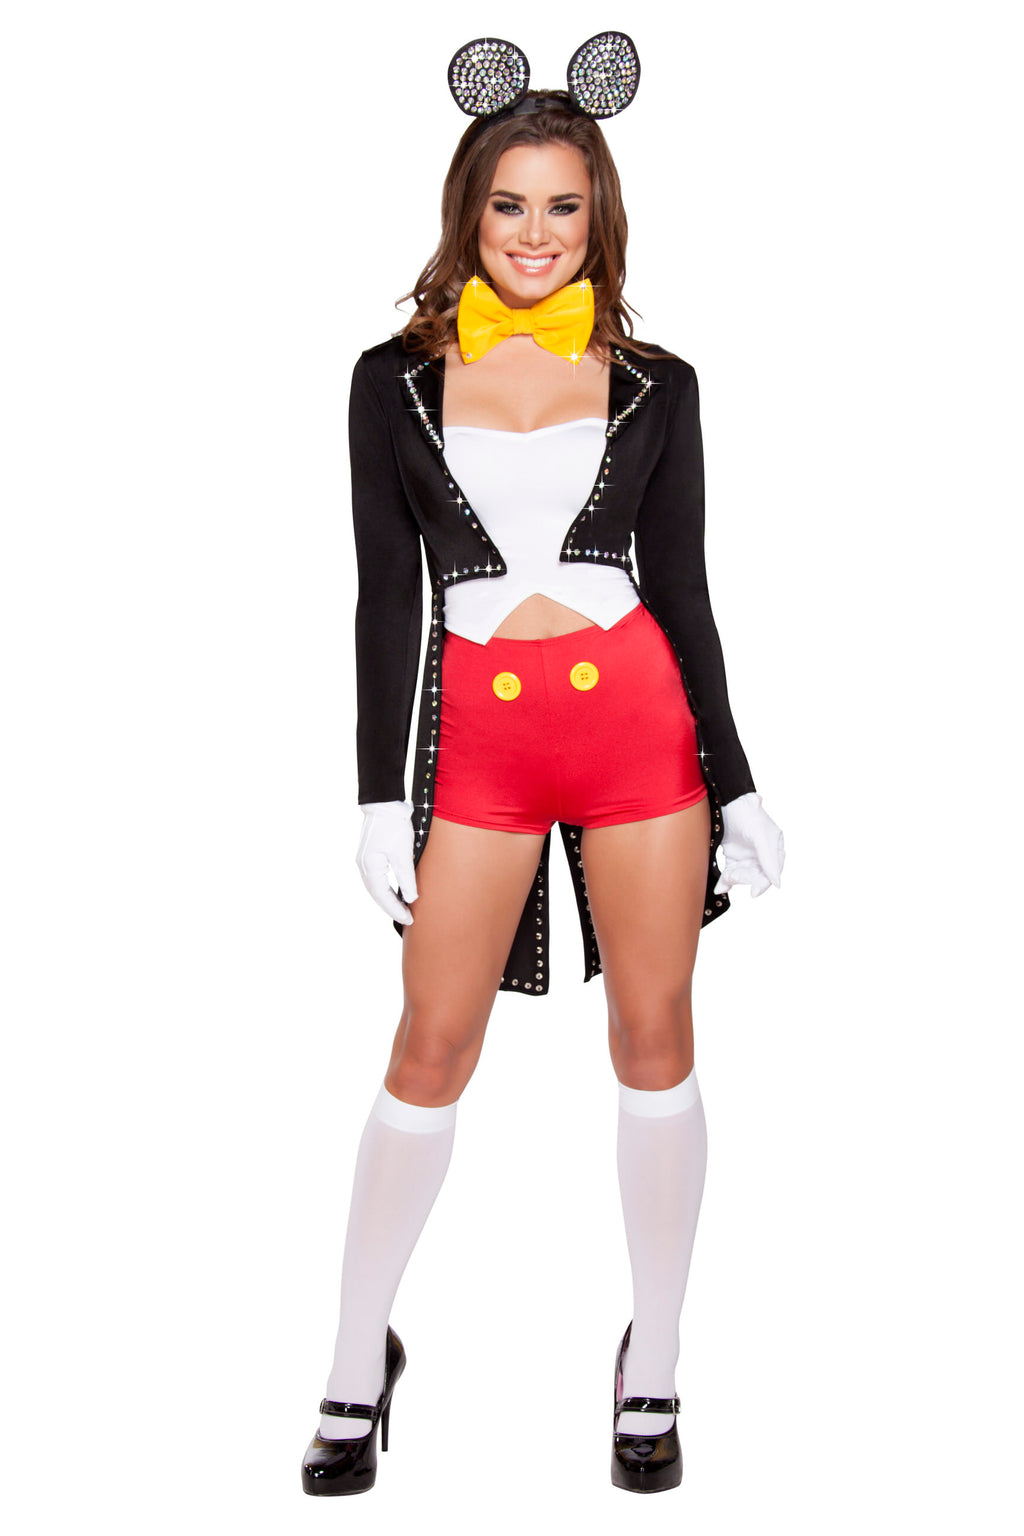 5-Piece-Miss-Mouse-Rave-Top-Jacket-&-Shorts-w/-Accessories-Party-Costume